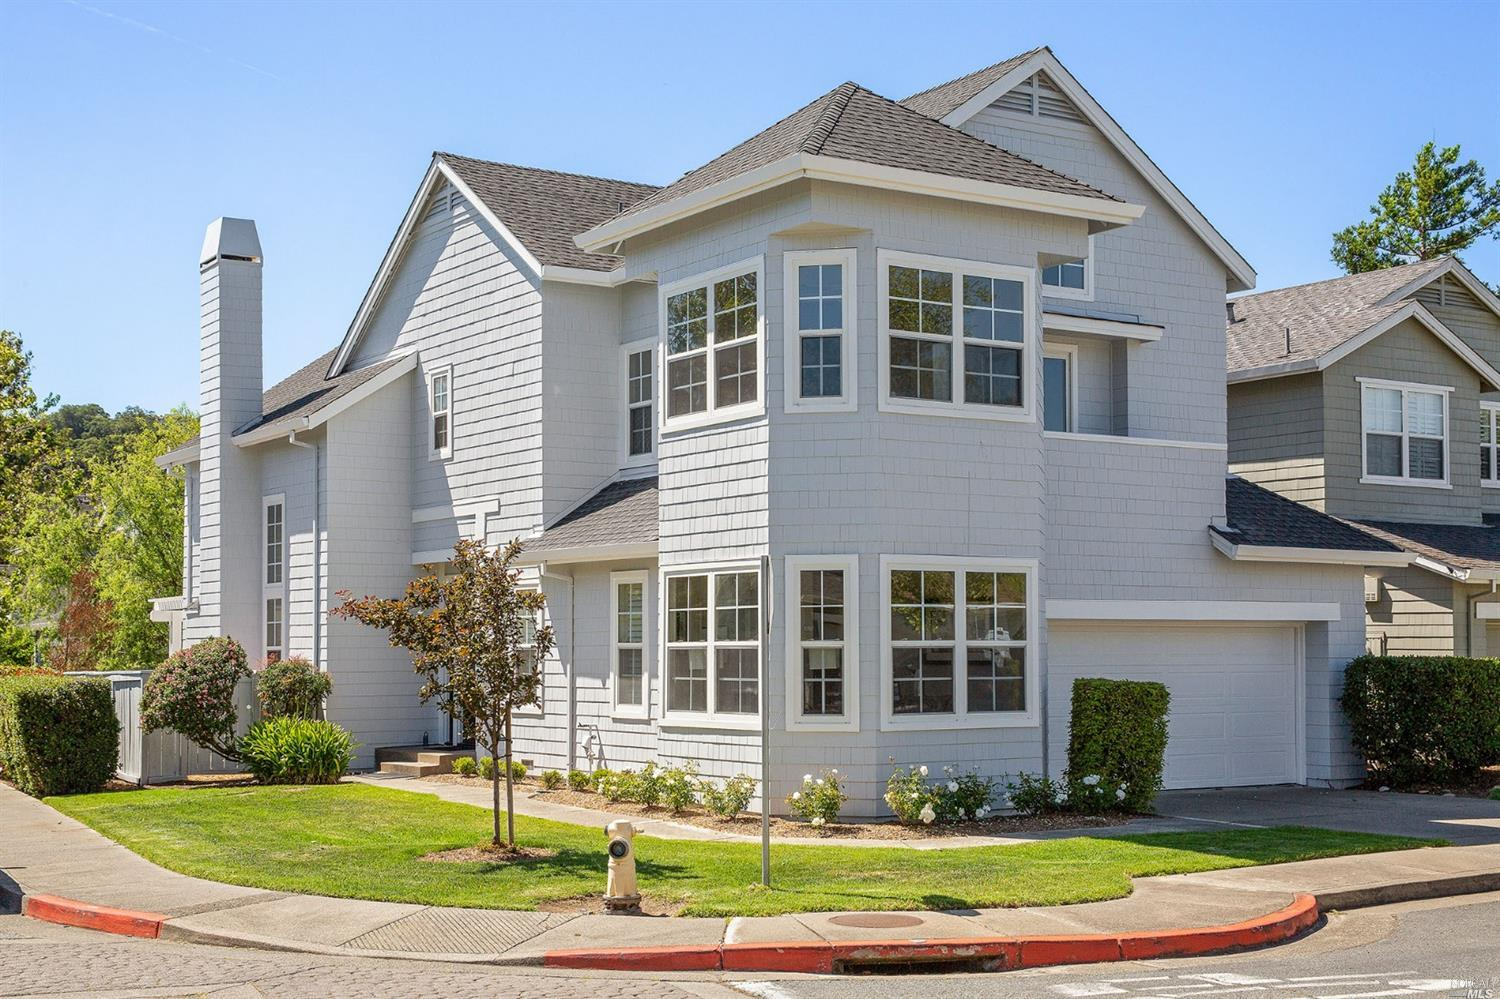 SOLD - 2 Edgewater Ct, San Rafael4 bed/ 3 bath, 2745 sf$1,049,000Represented Buyers, 21 day close, negotiated $8000 credit at close of escrow.